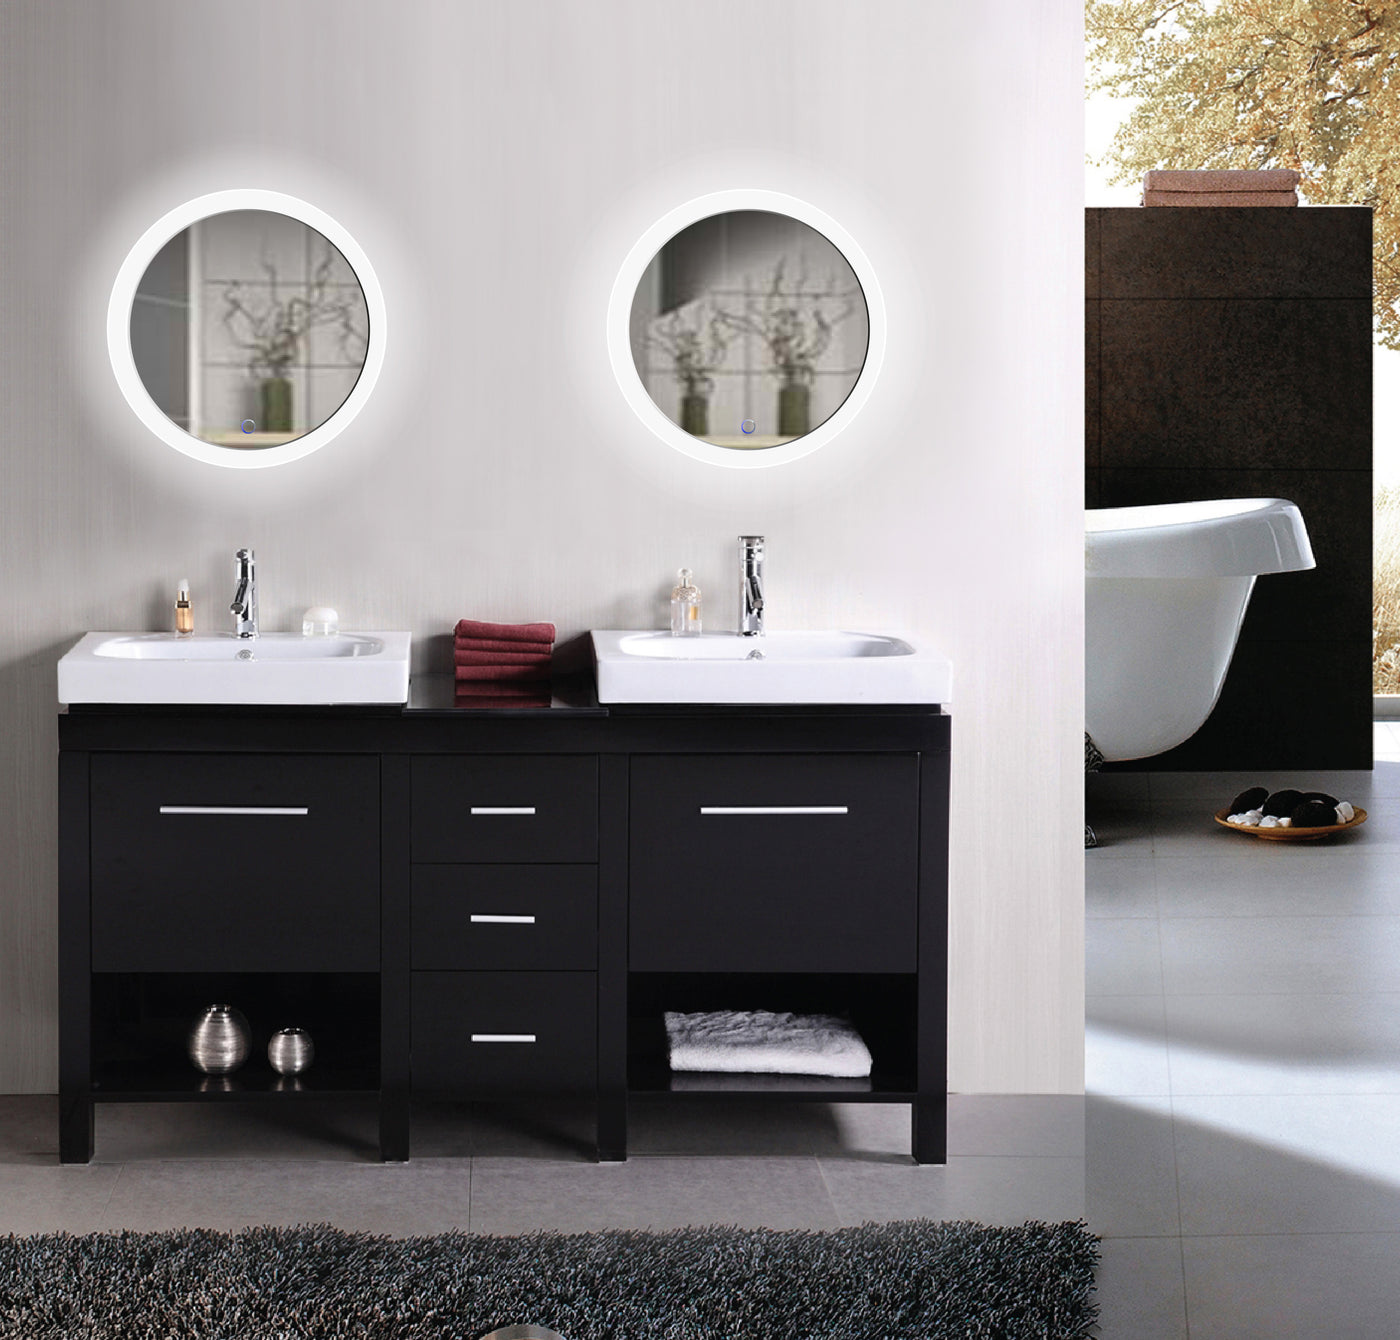 Krugg round bathroom vanity mirror with led lights sol22 valientlux round bathroom vanity mirror with lights sol two mirrors aloadofball Images